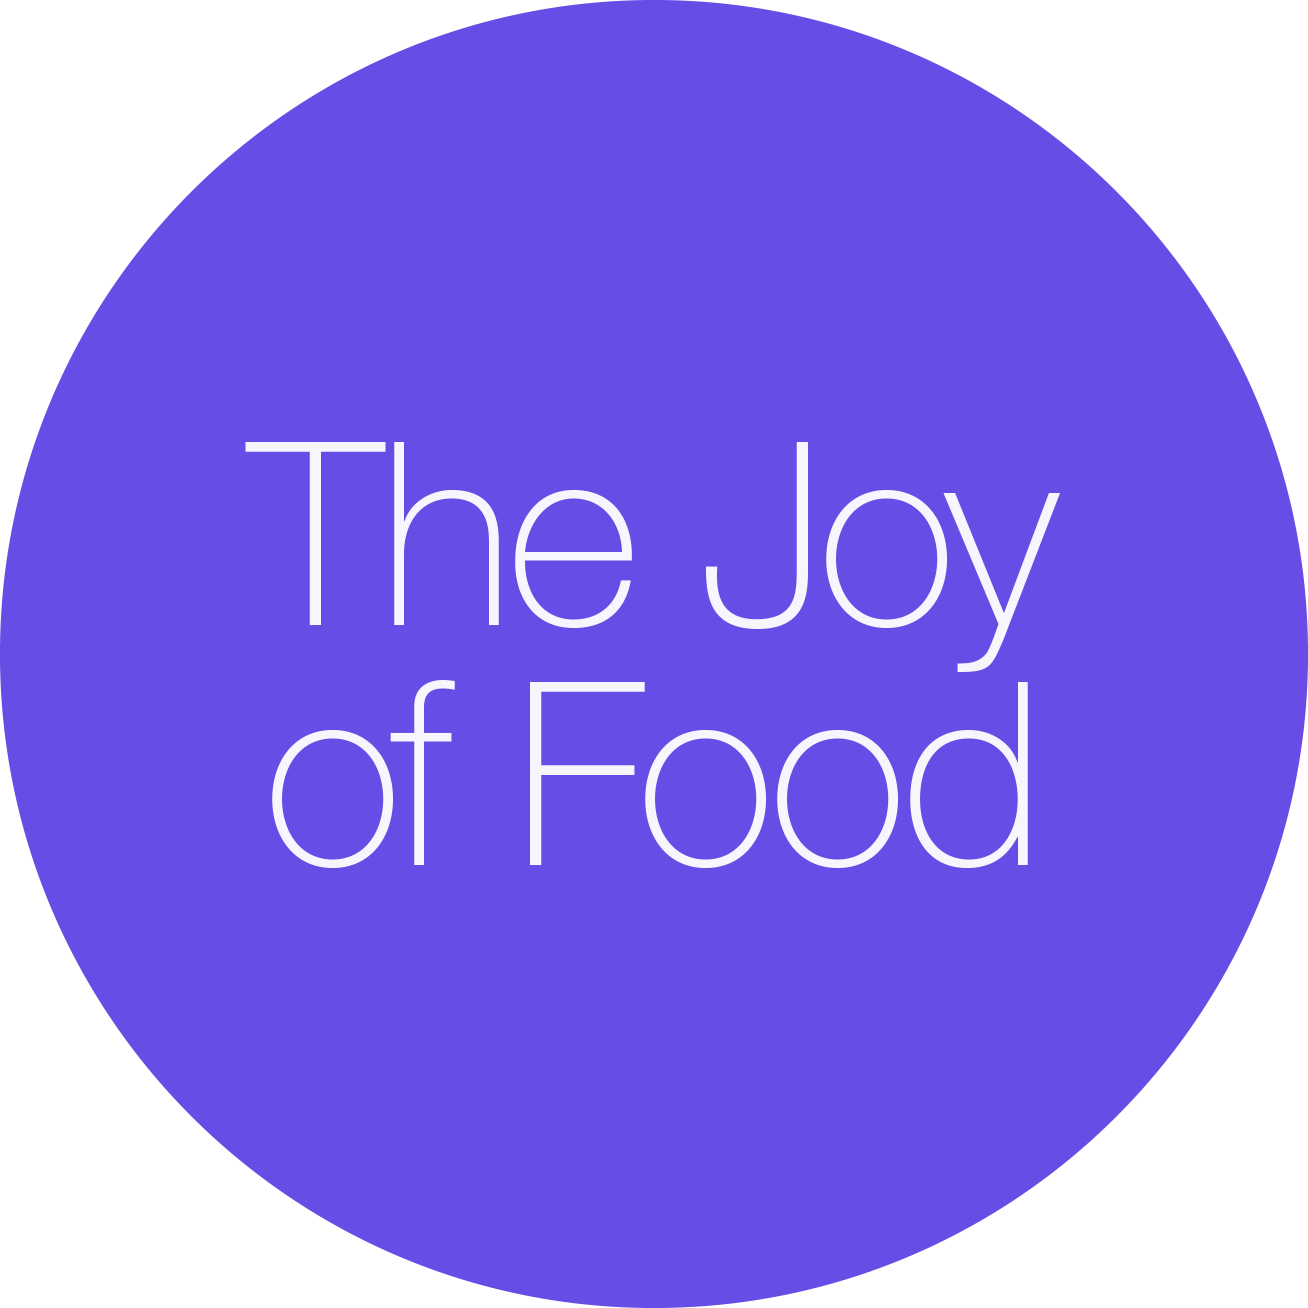 Quotes vector food. The joy of national